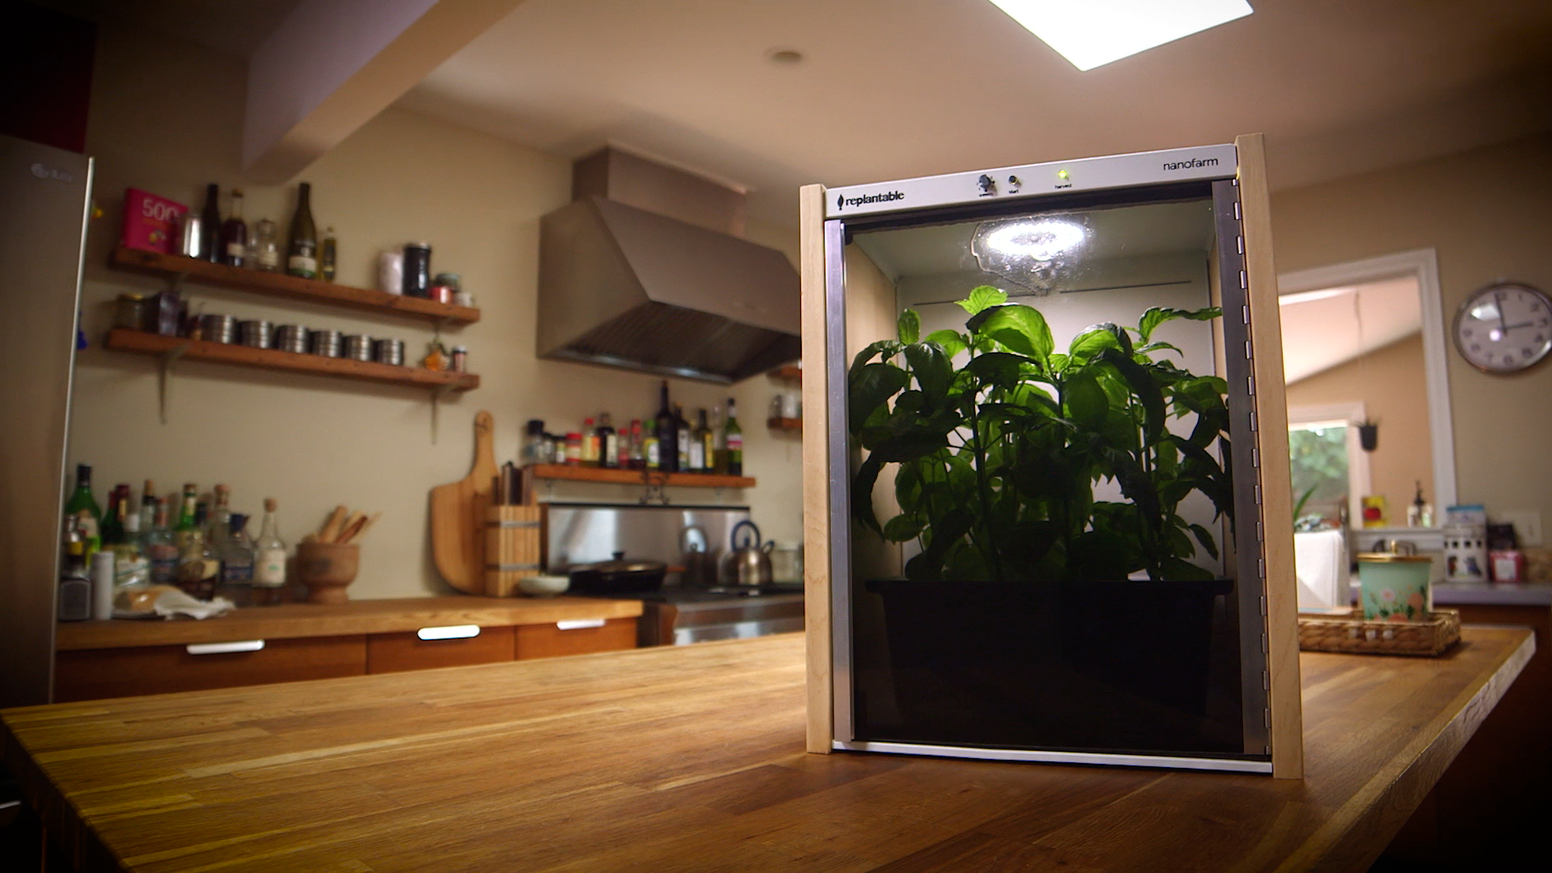 Nanofarm: The Food-Growing Appliance by Replantable — Kickstarter